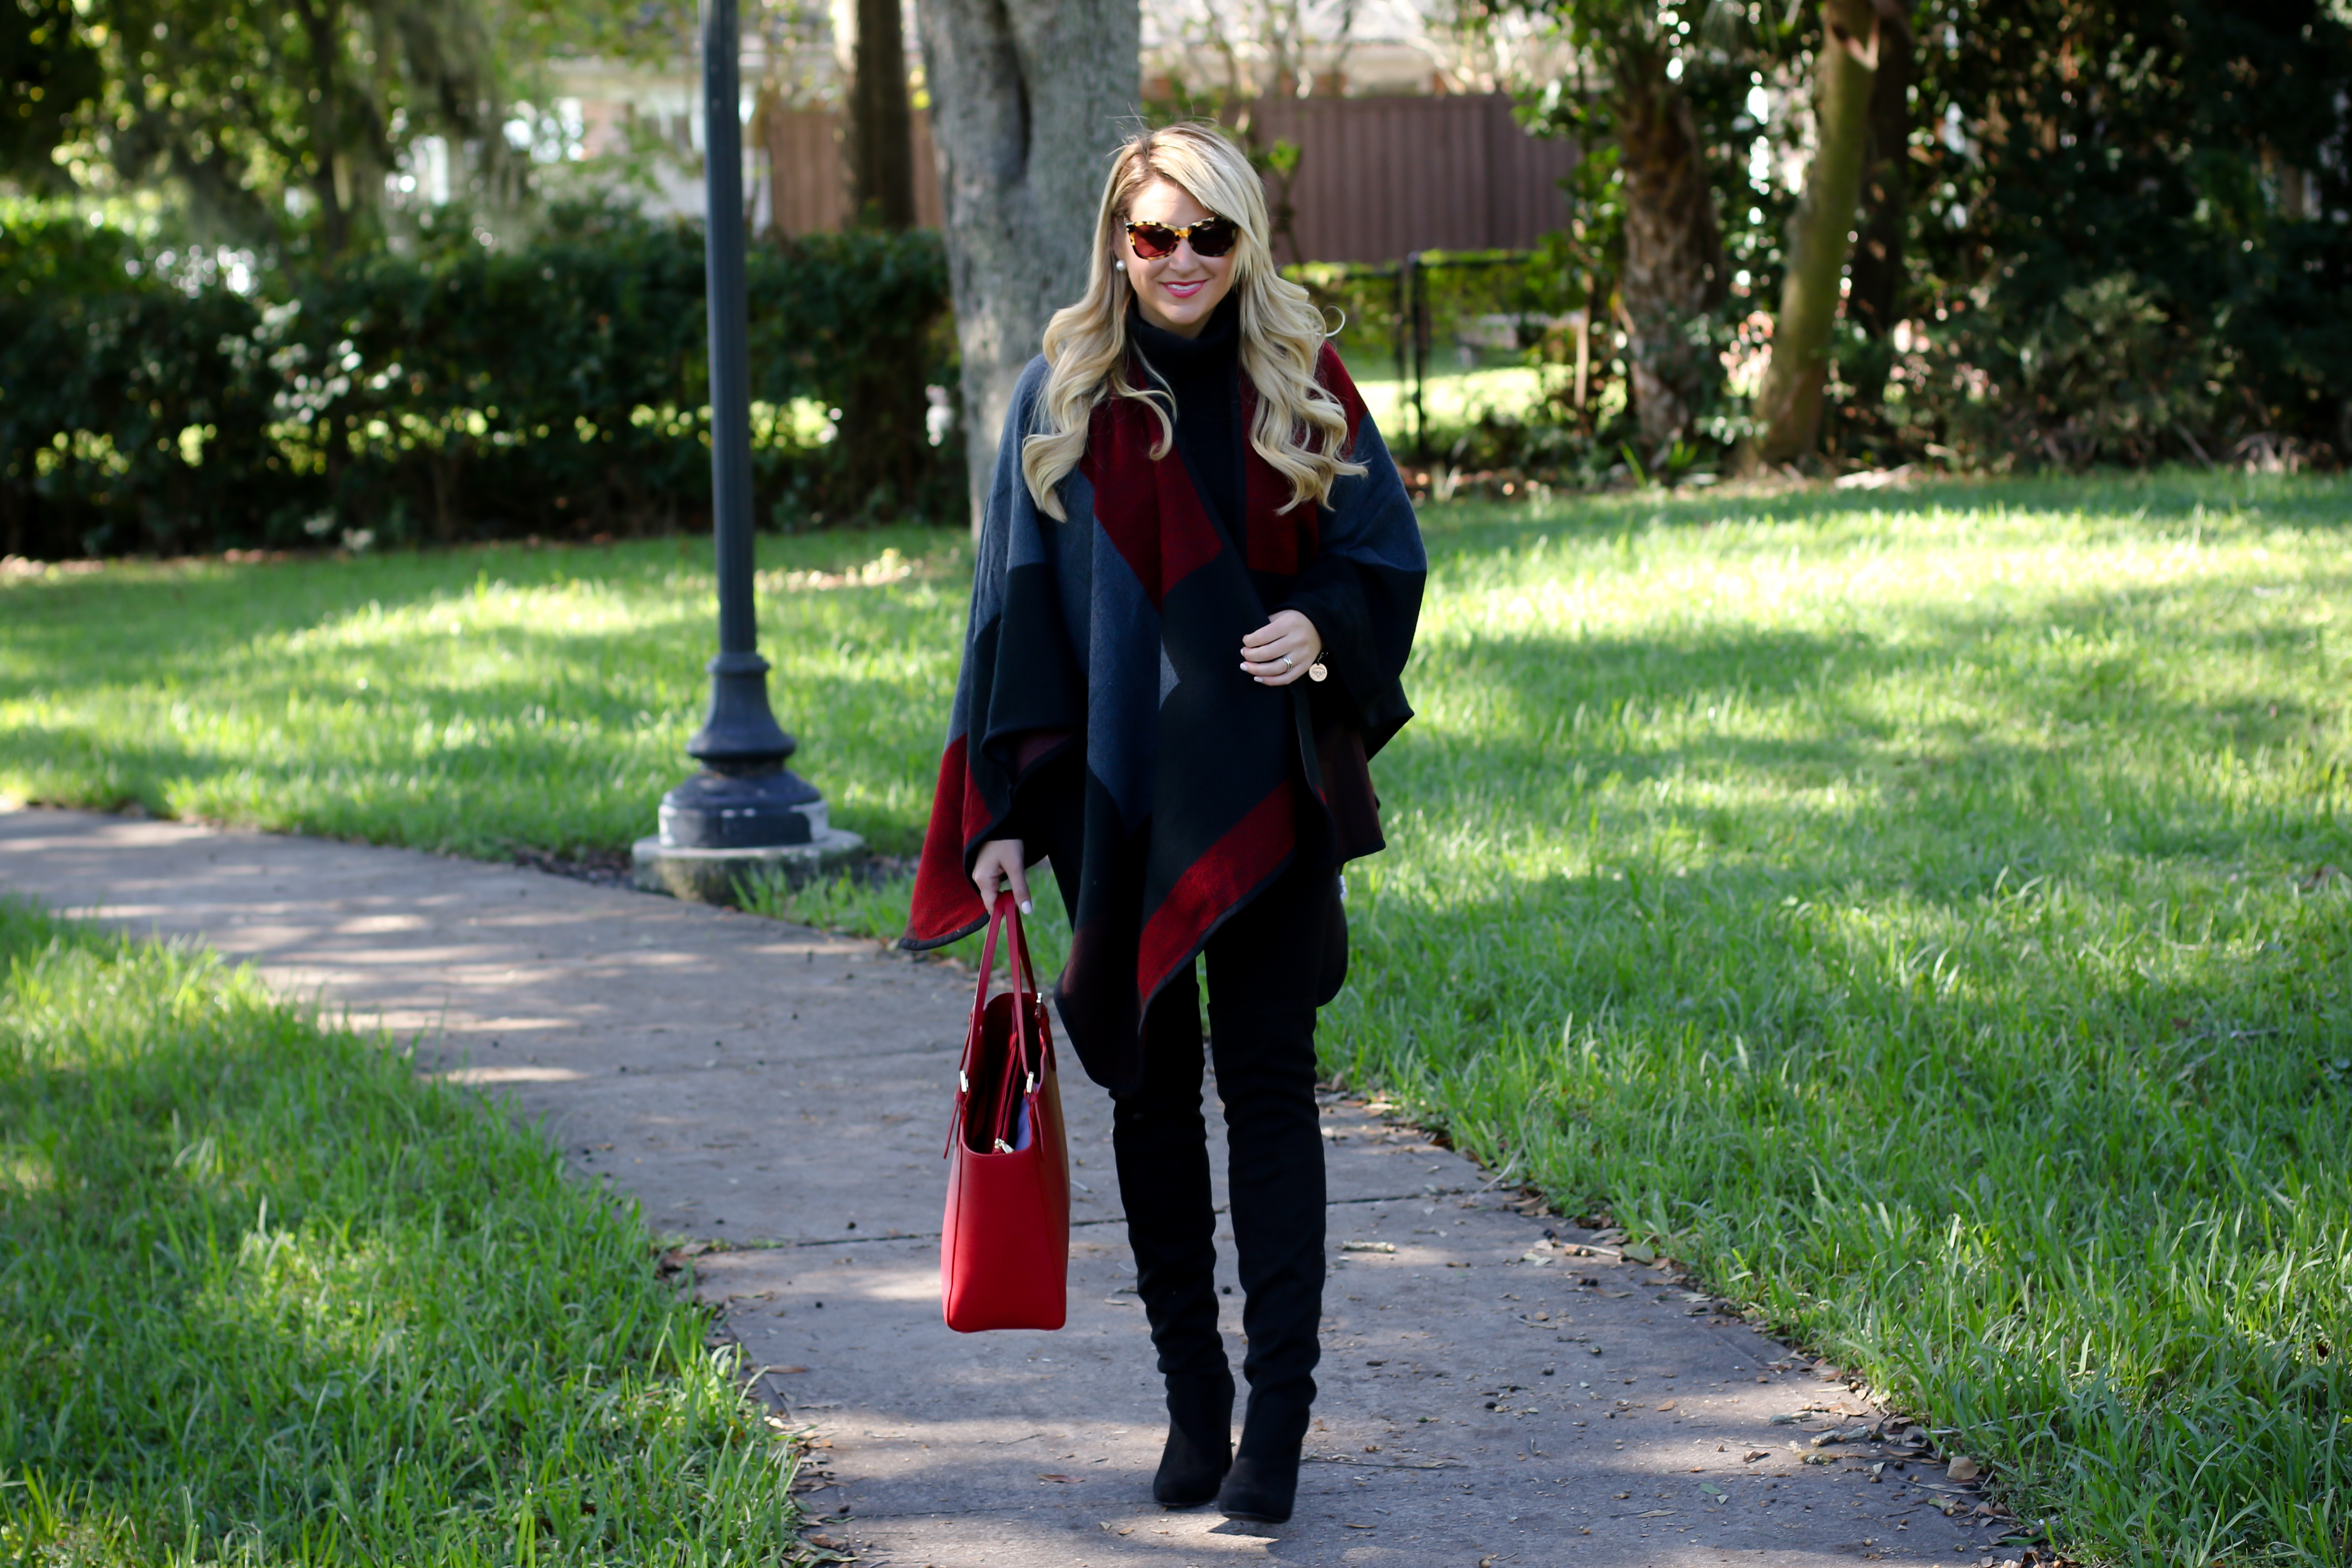 Outfit Winter Capes And Over The Knee Boots Shop Dandy